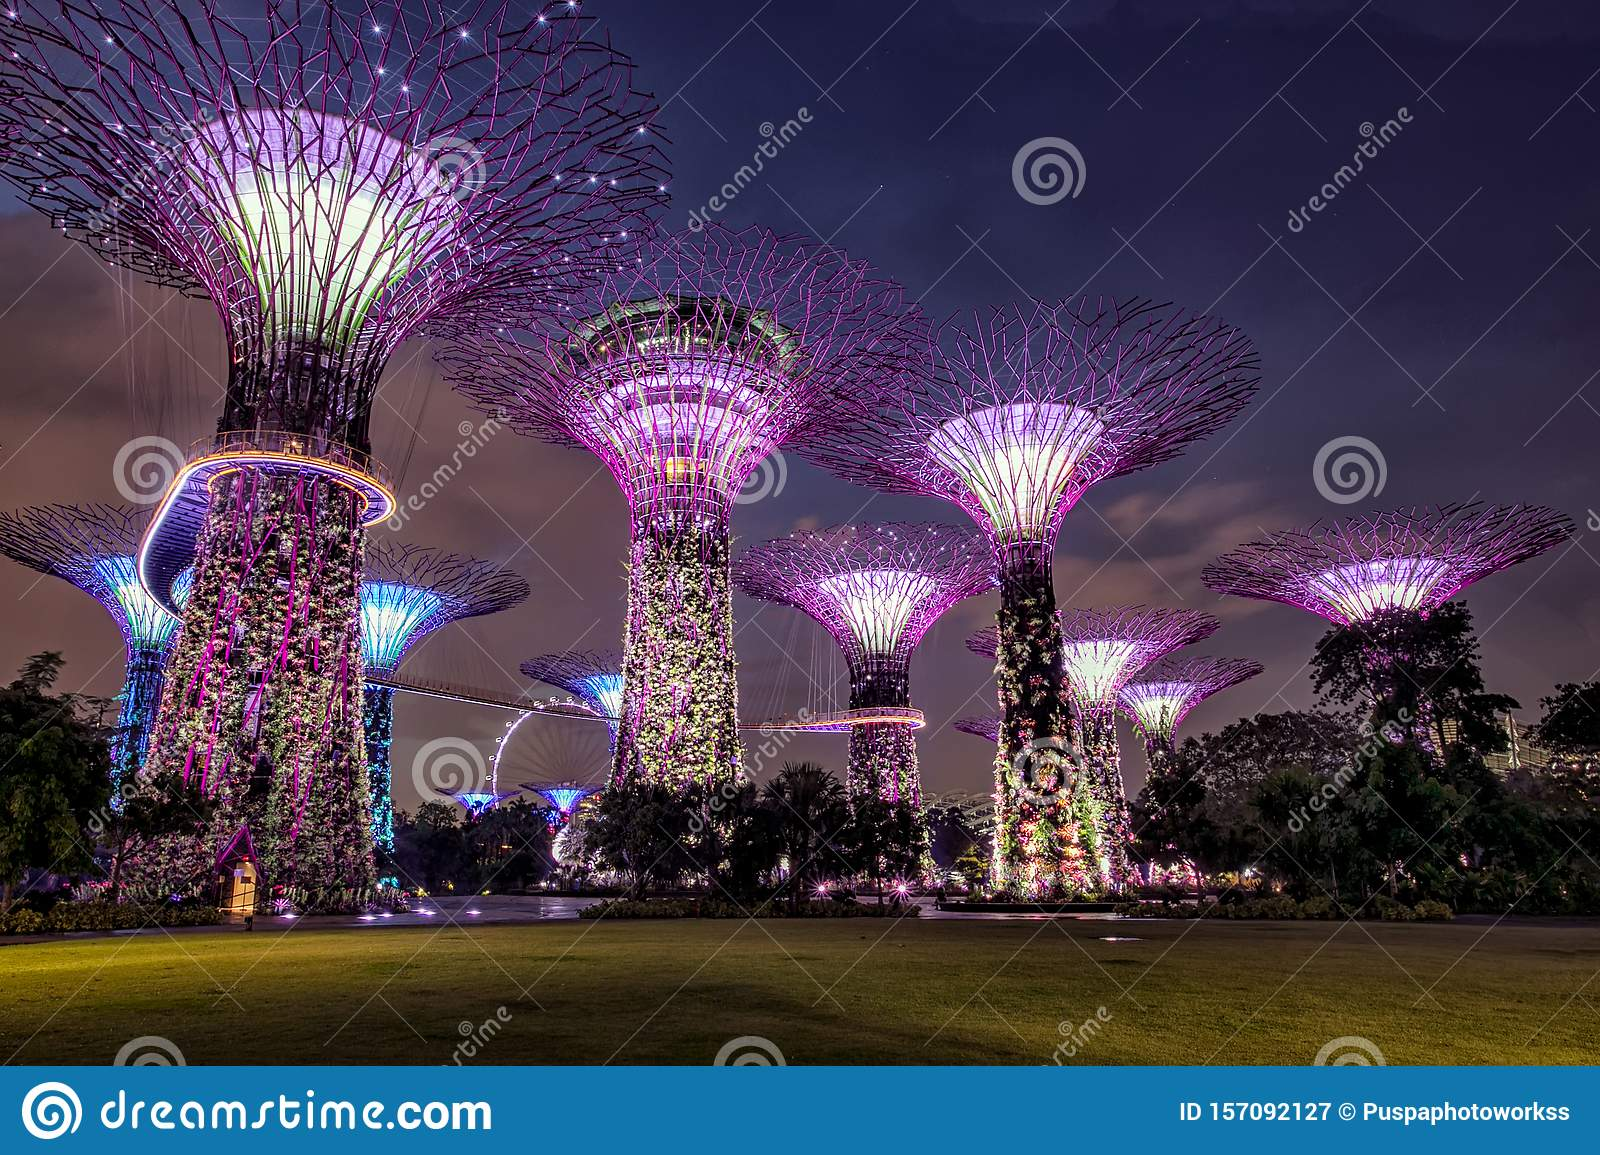 Amazing Supertree Grove With Beautiful Park at the Night.